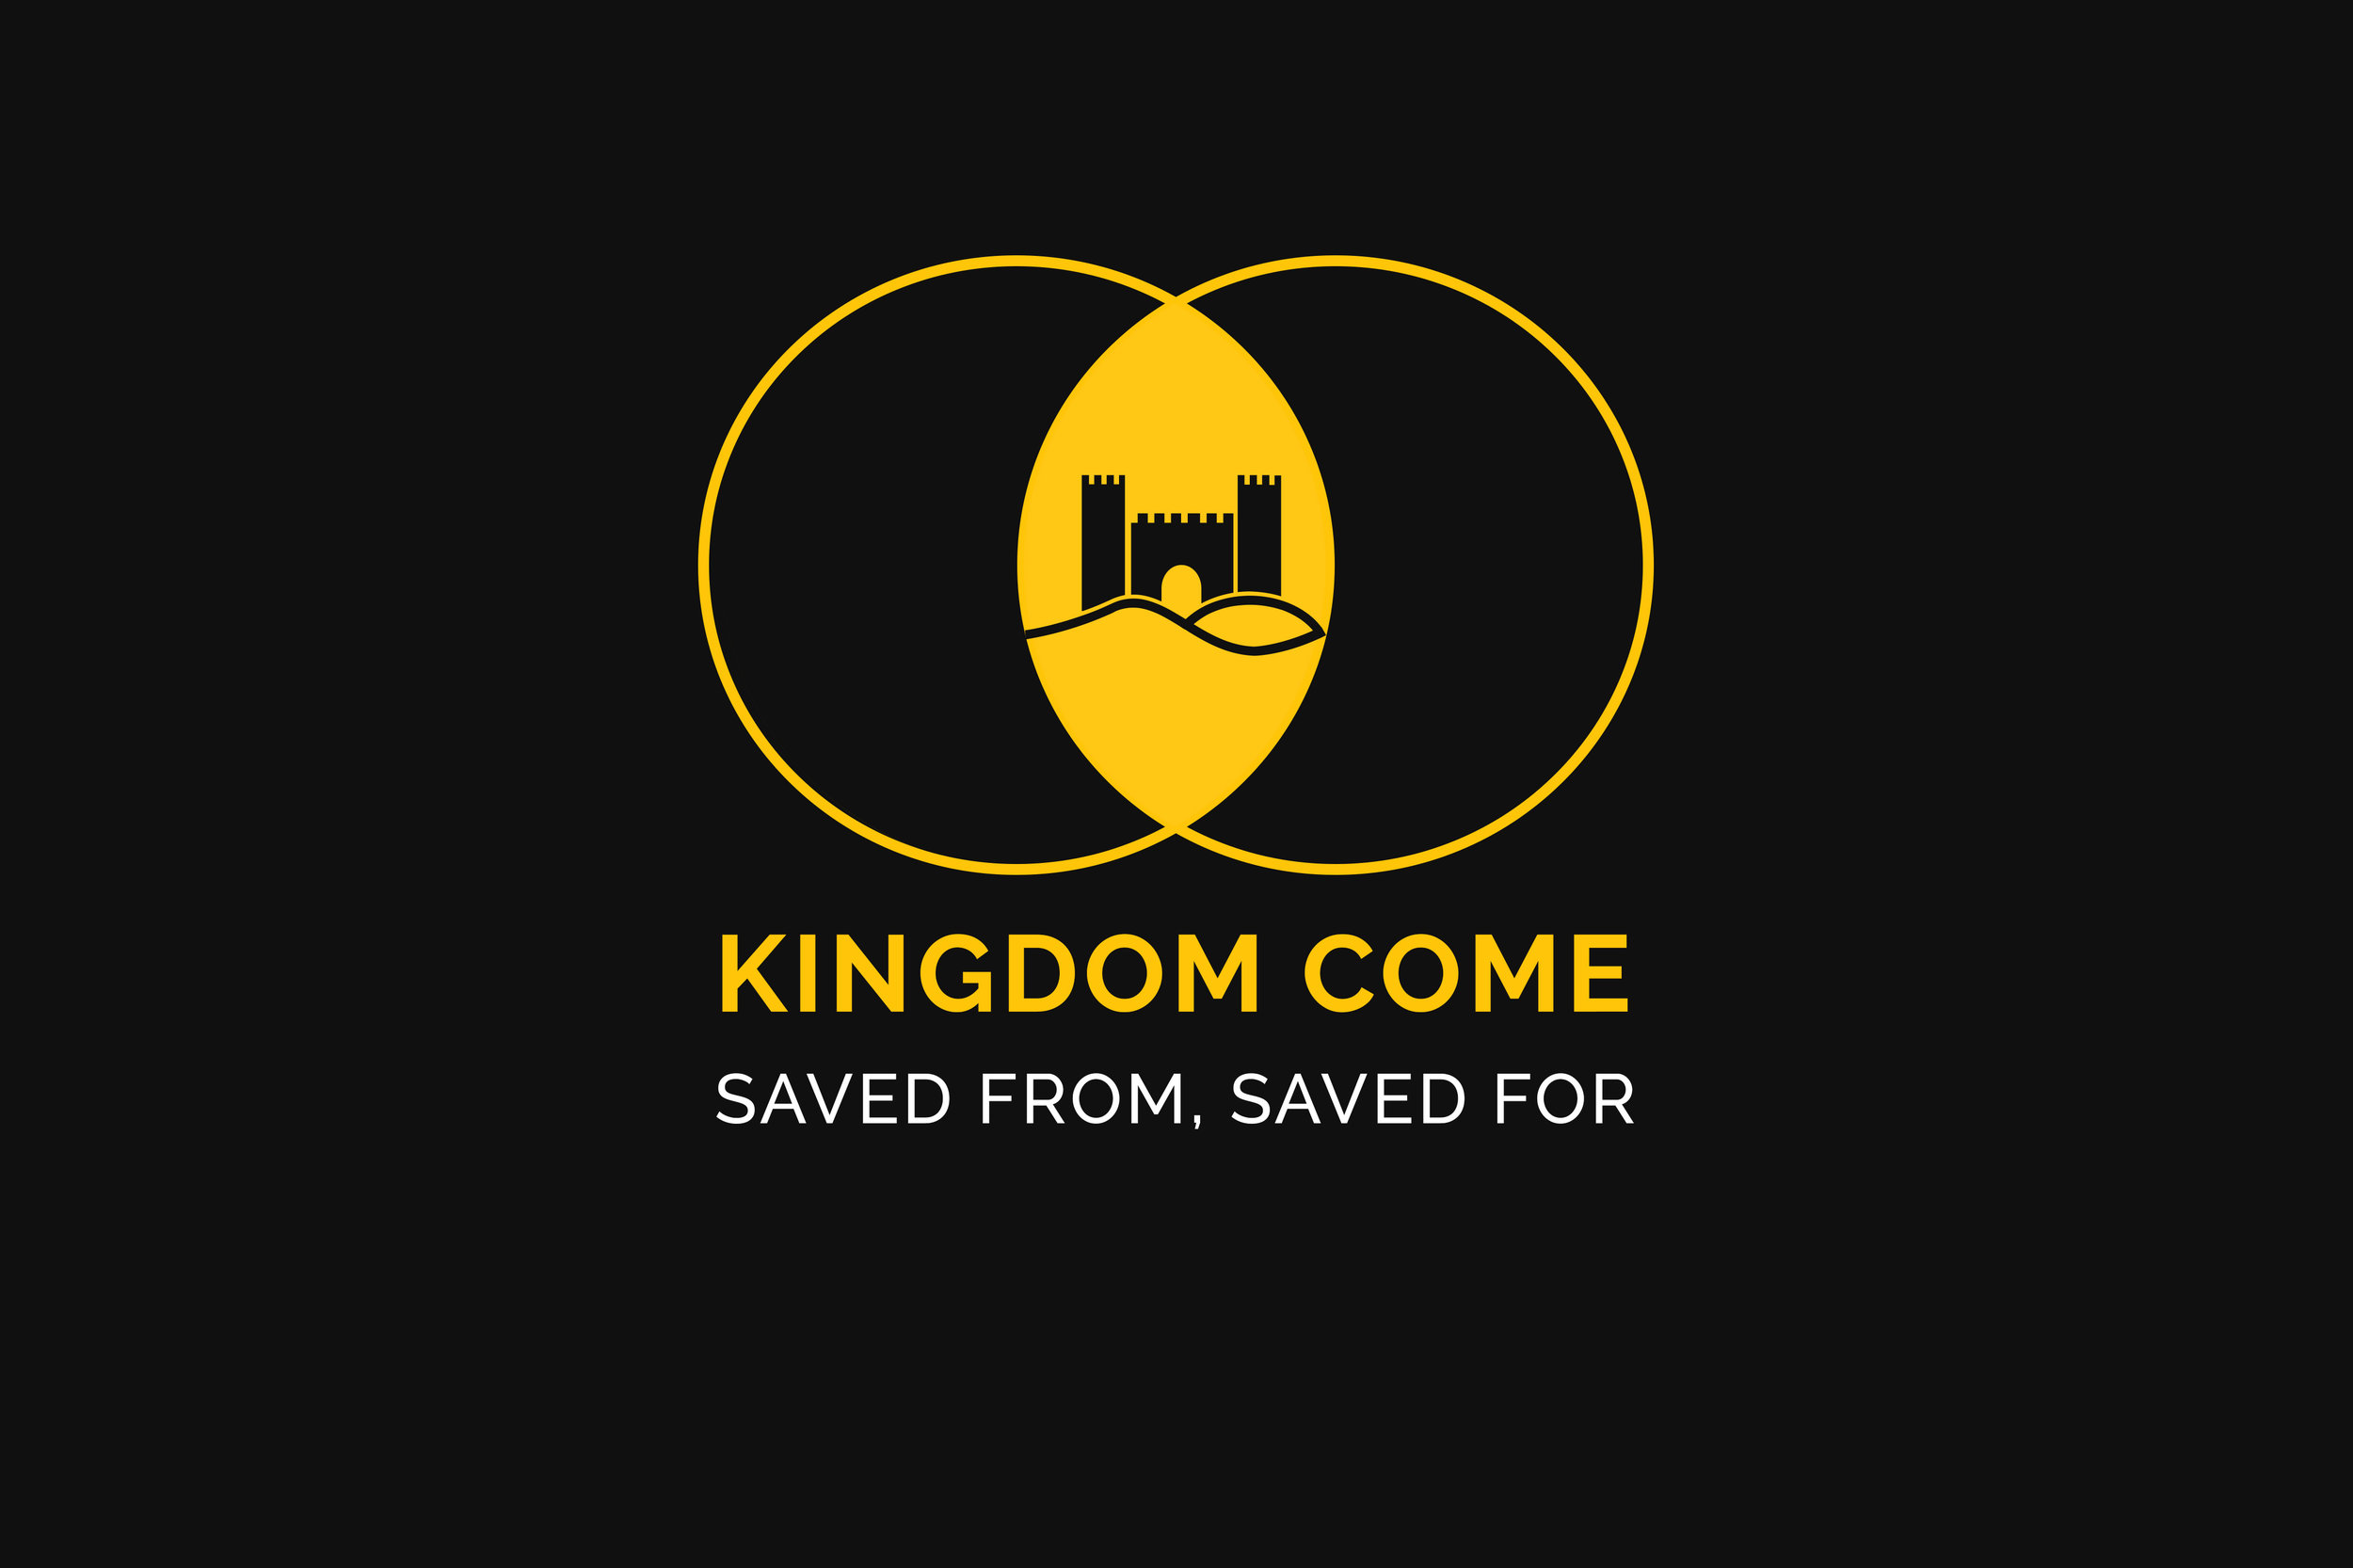 Kingdom-Come-Saved-From.jpg